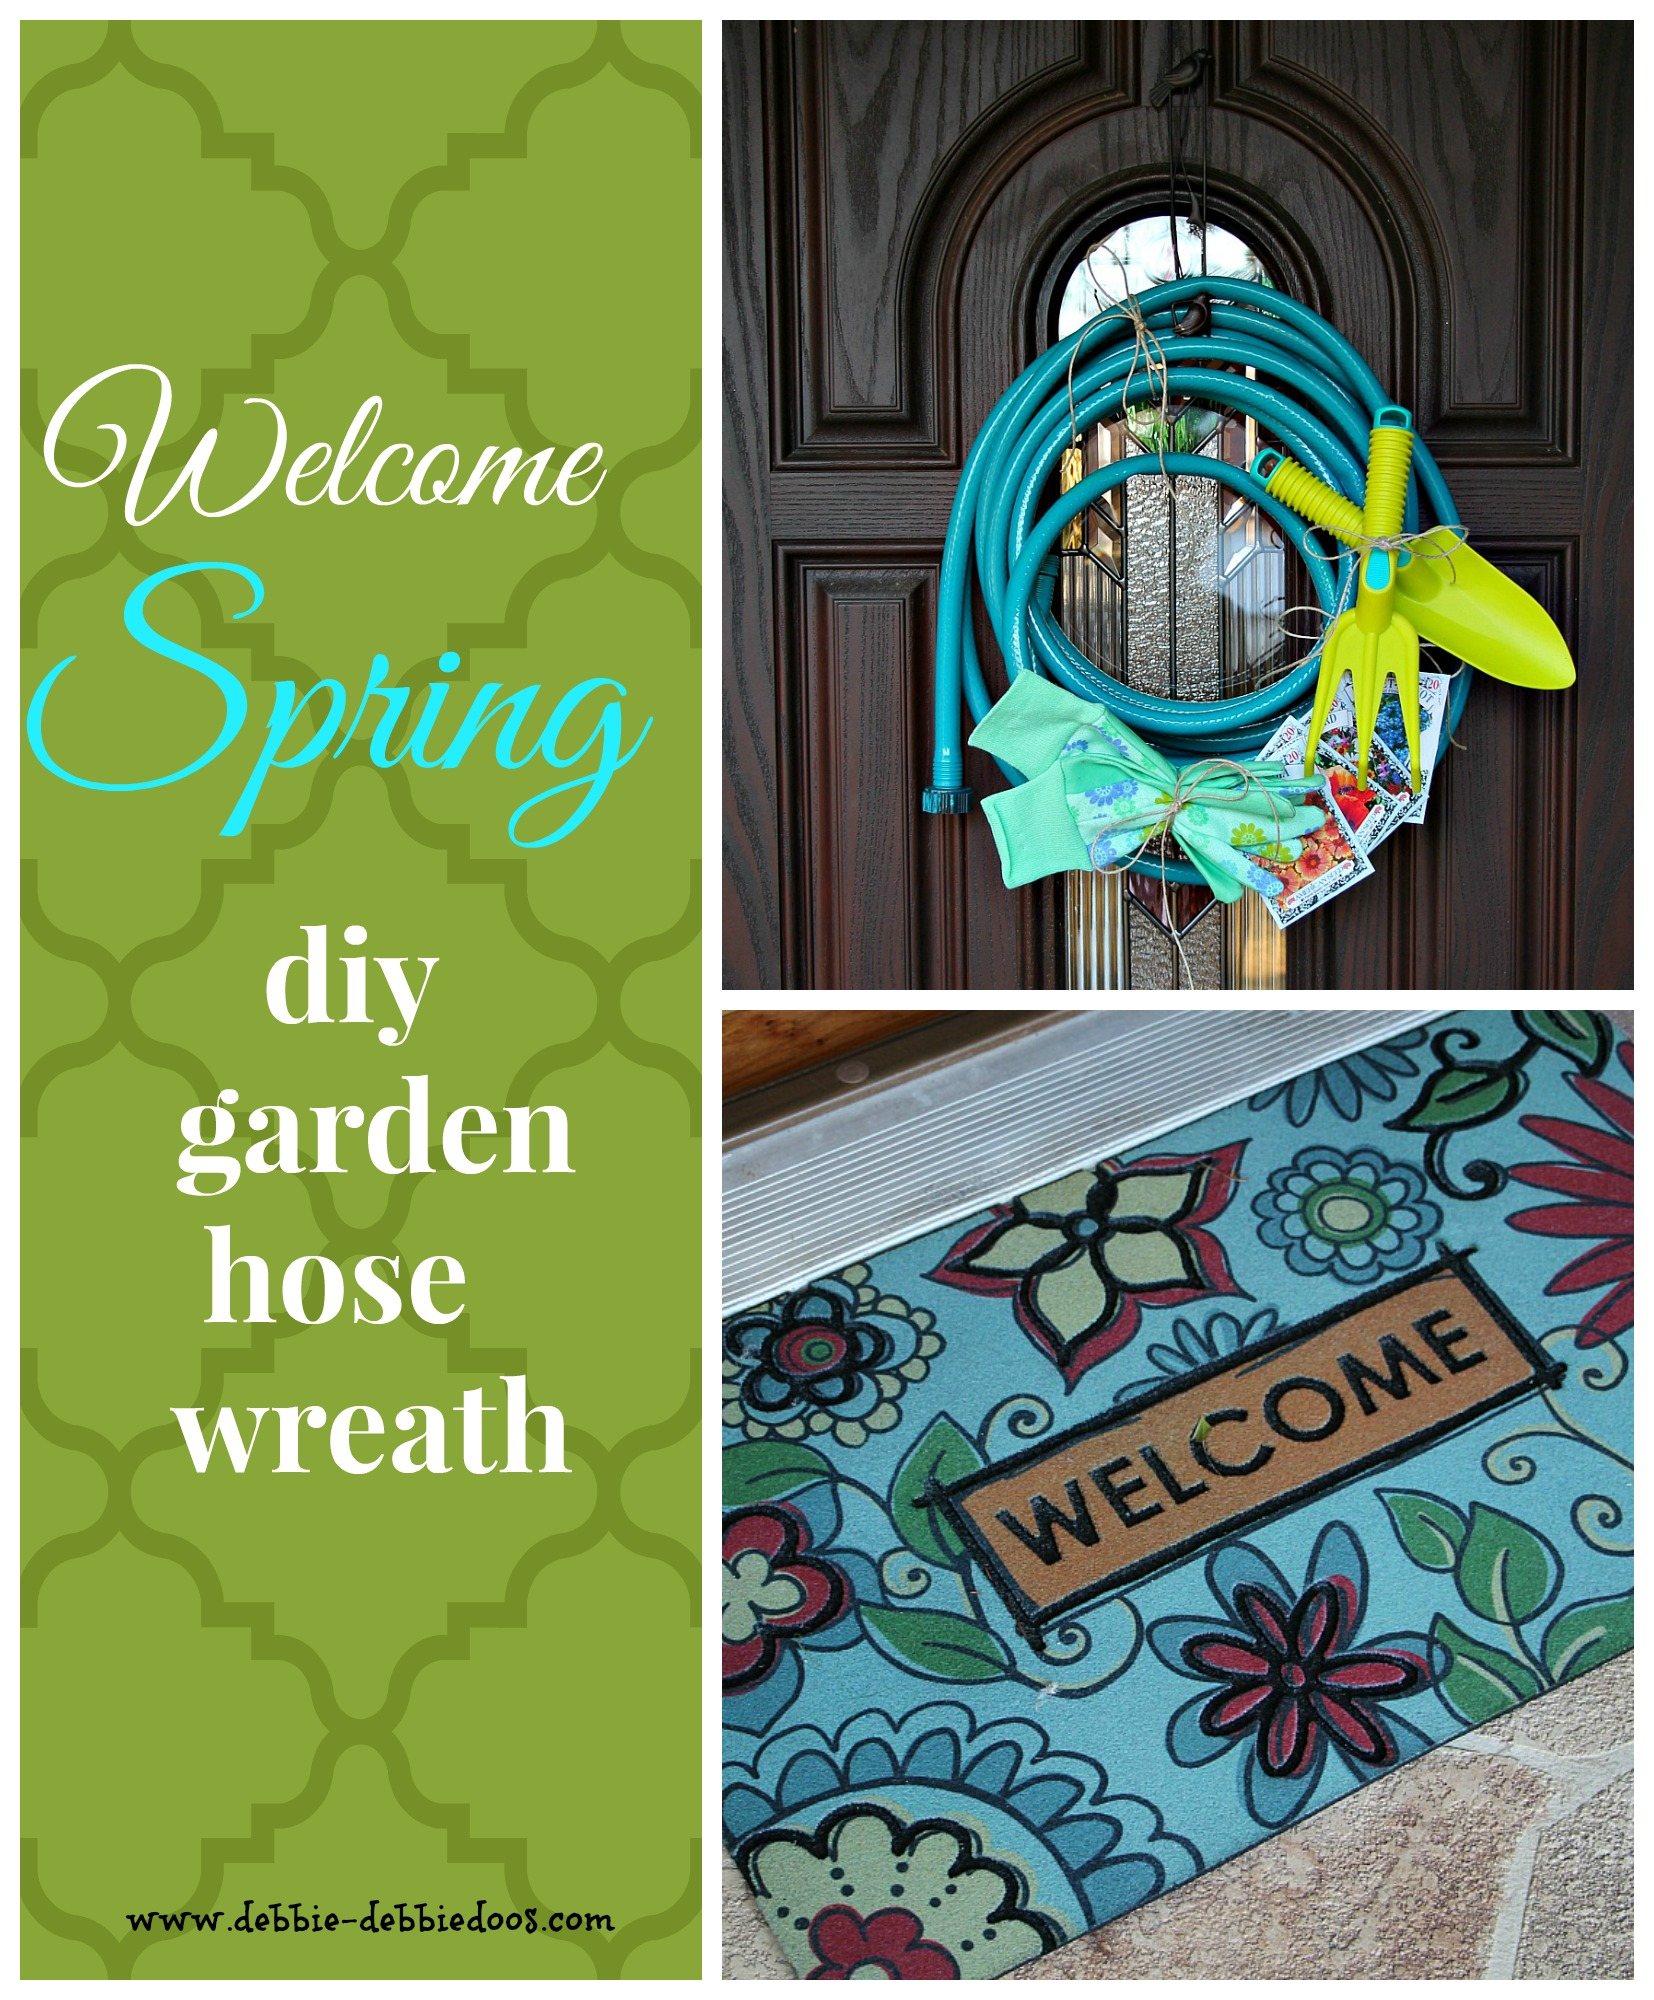 Spring welcome garden hose wreath